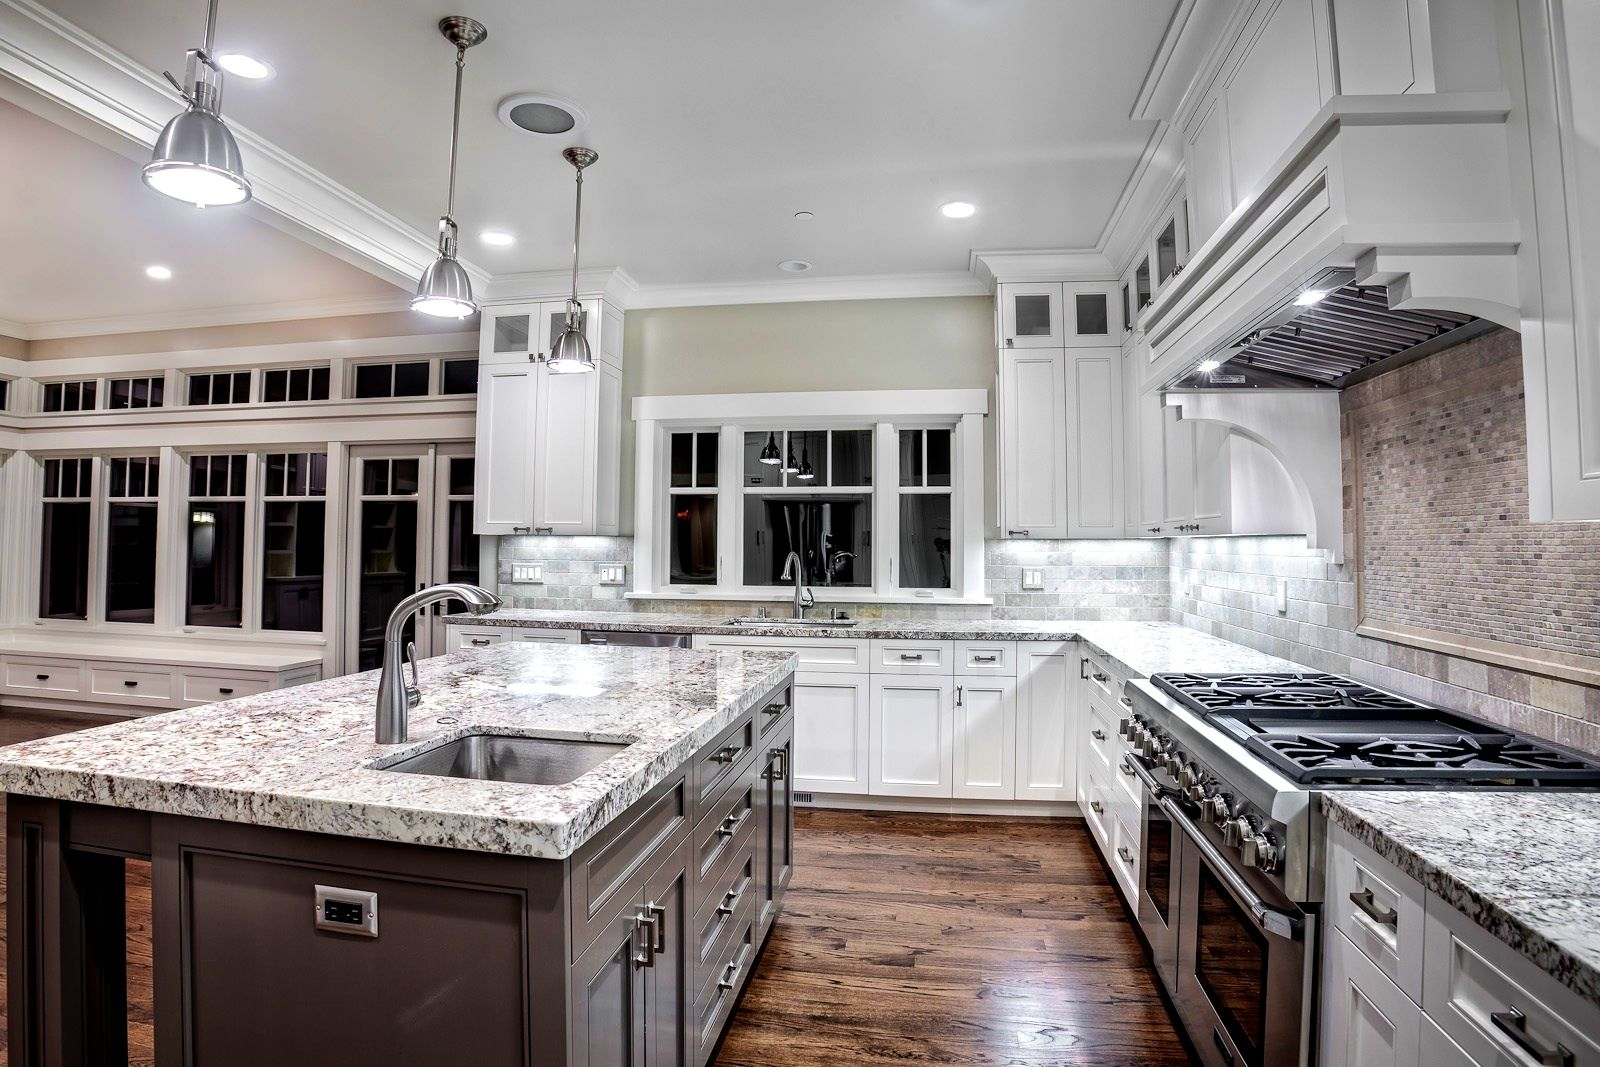 Gray and white kitchen ideas kitchen dreams pinterest kitchens